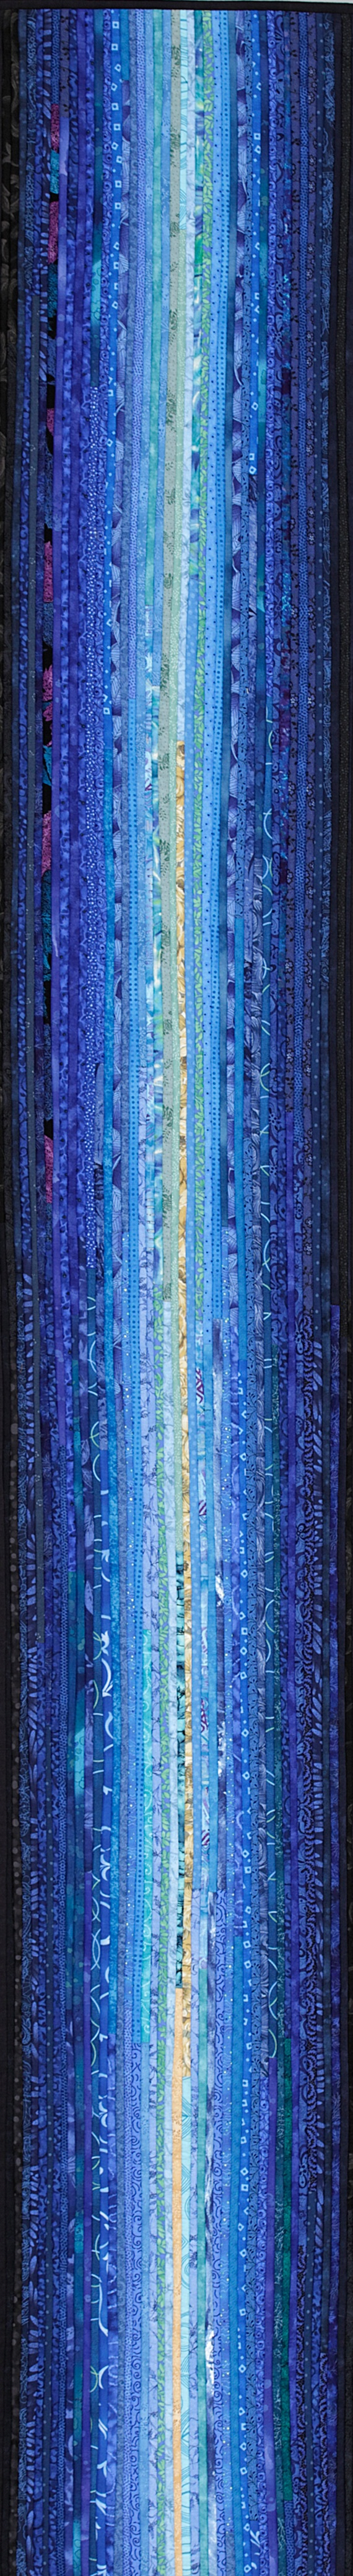 "Taking advantage of the length that Pinterest allows me--this is my quilt--blue river--12 x 80"". Yes, it is pieced of very thin strips of commercial cottons and can be either a long wall hanging or a table runner--and yes, I can go as l--o--n--g as you want. #quilts #artquilts http://www.annbrauer.com"